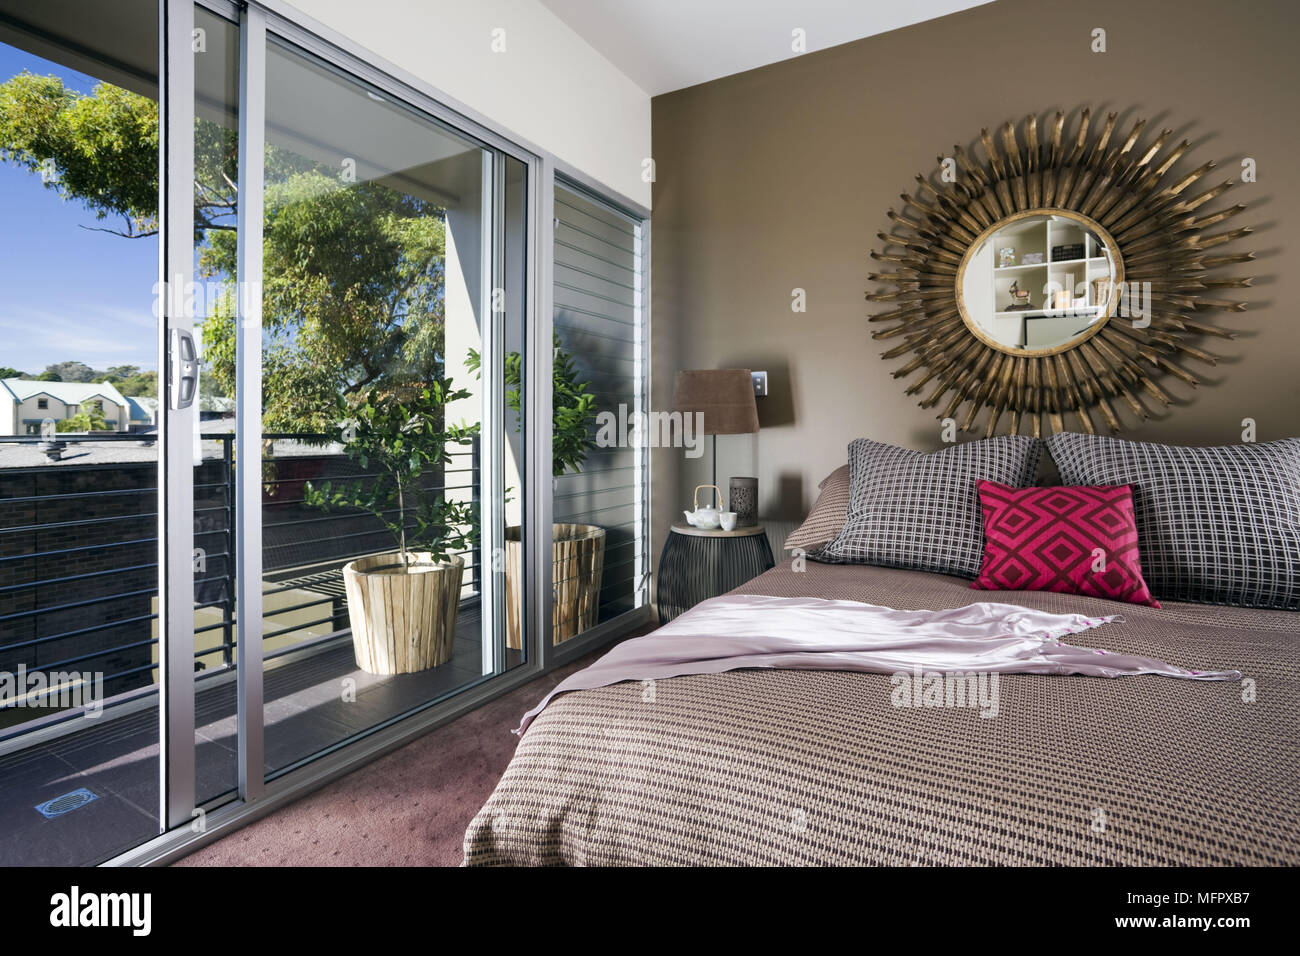 Sunray mirror above double bed in modern bedroom with glass patio